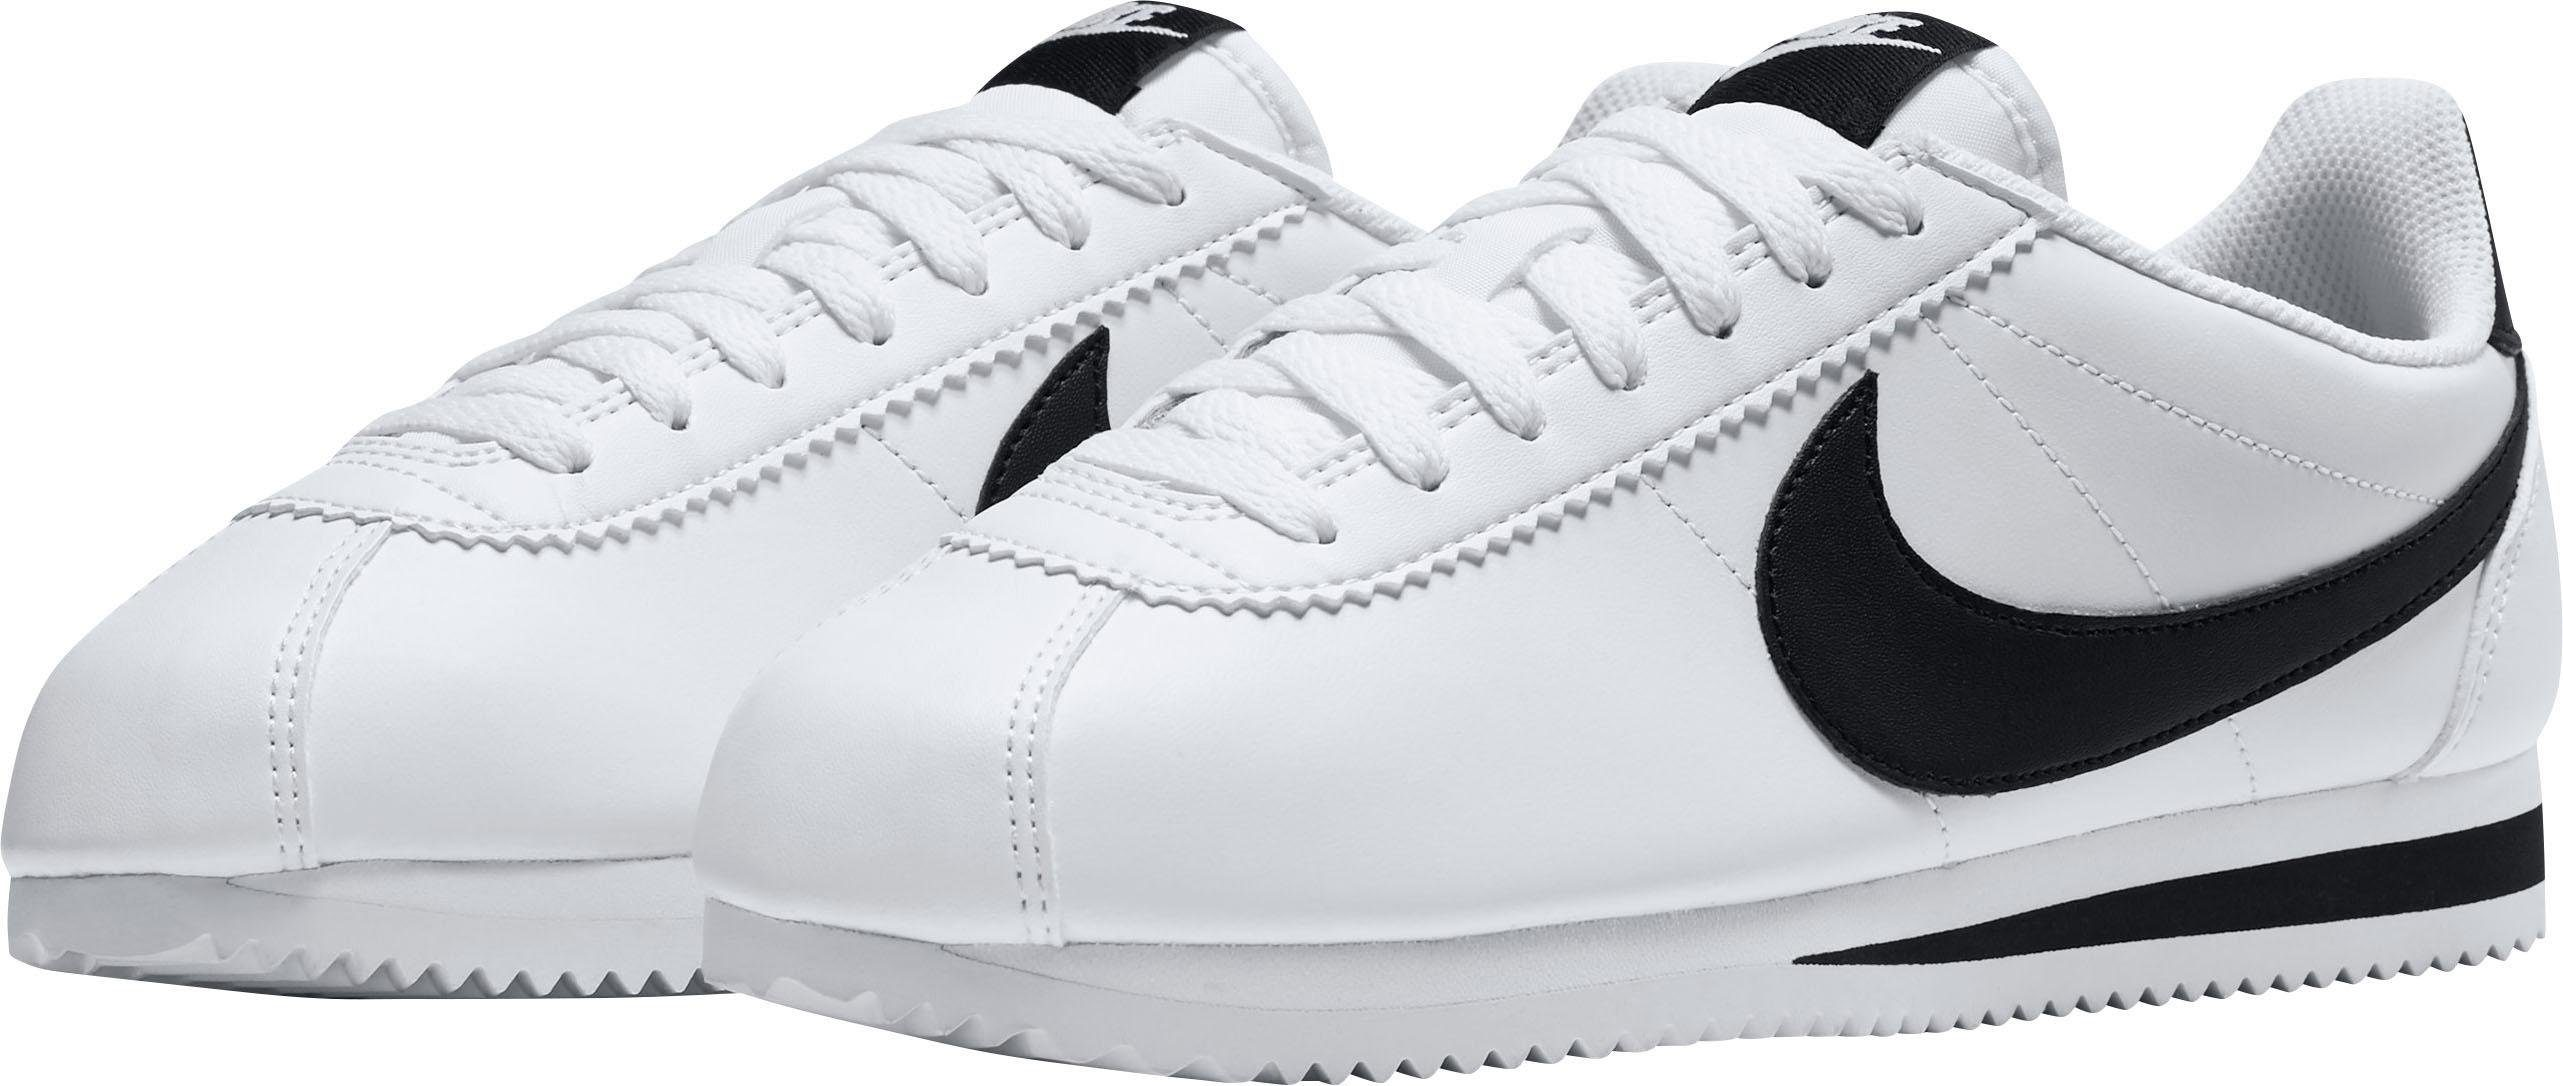 Nike Sportswear  Wmns Classic Cortez Leather  Turnschuhe, Obermaterial ... Exportieren